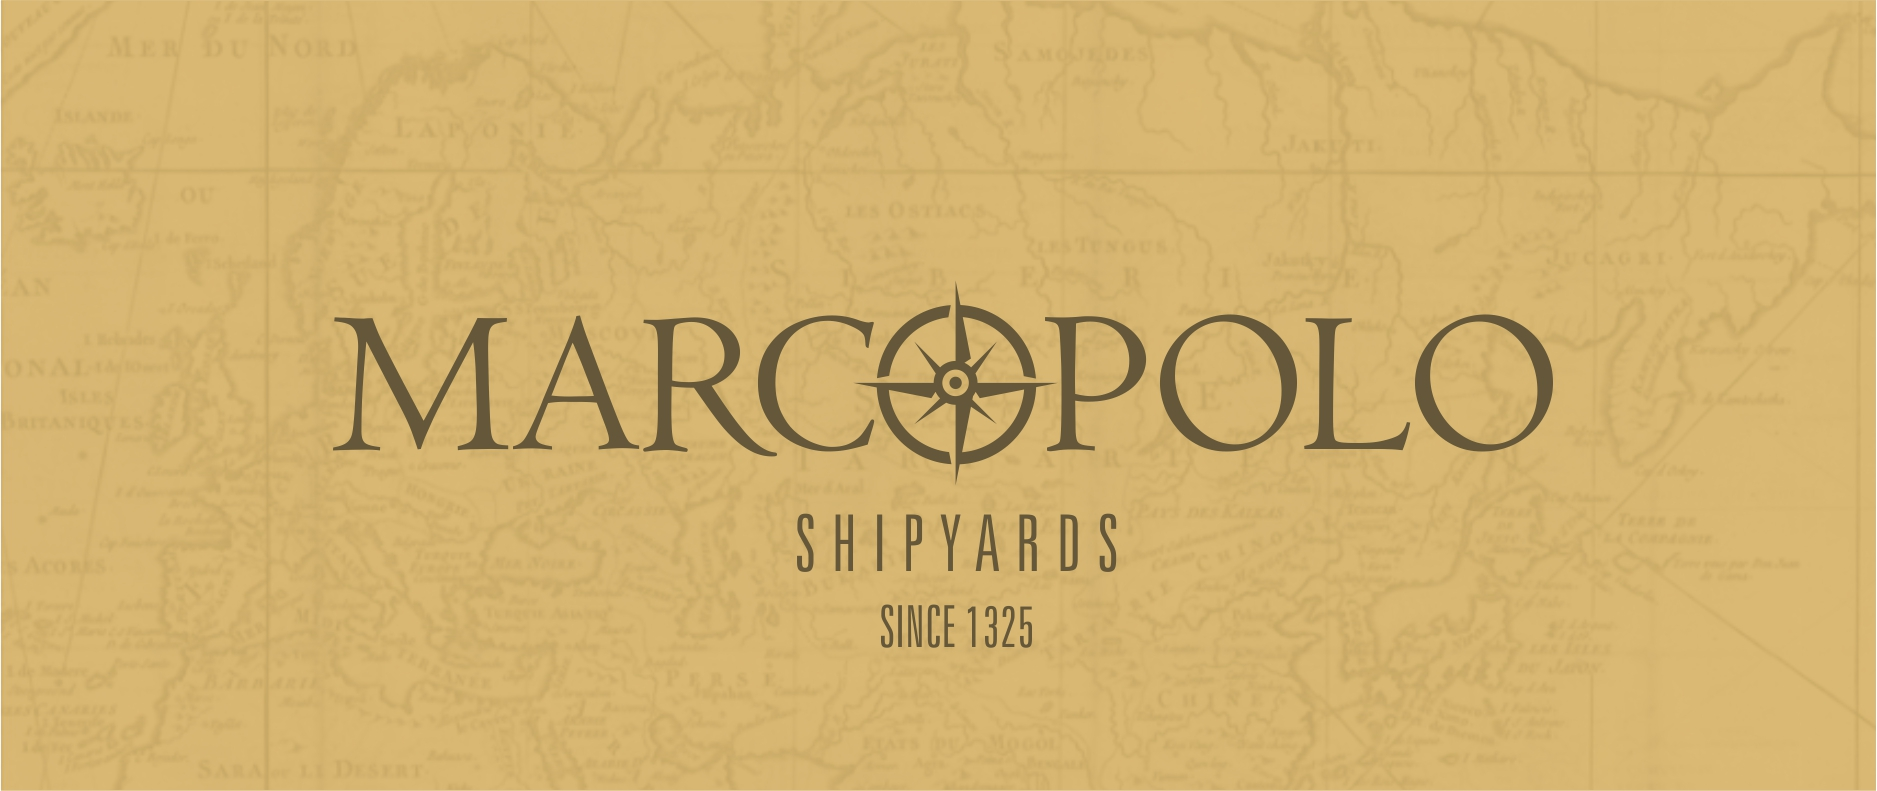 Marcopolo | Brands of the World™ | Download vector logos and logotypes